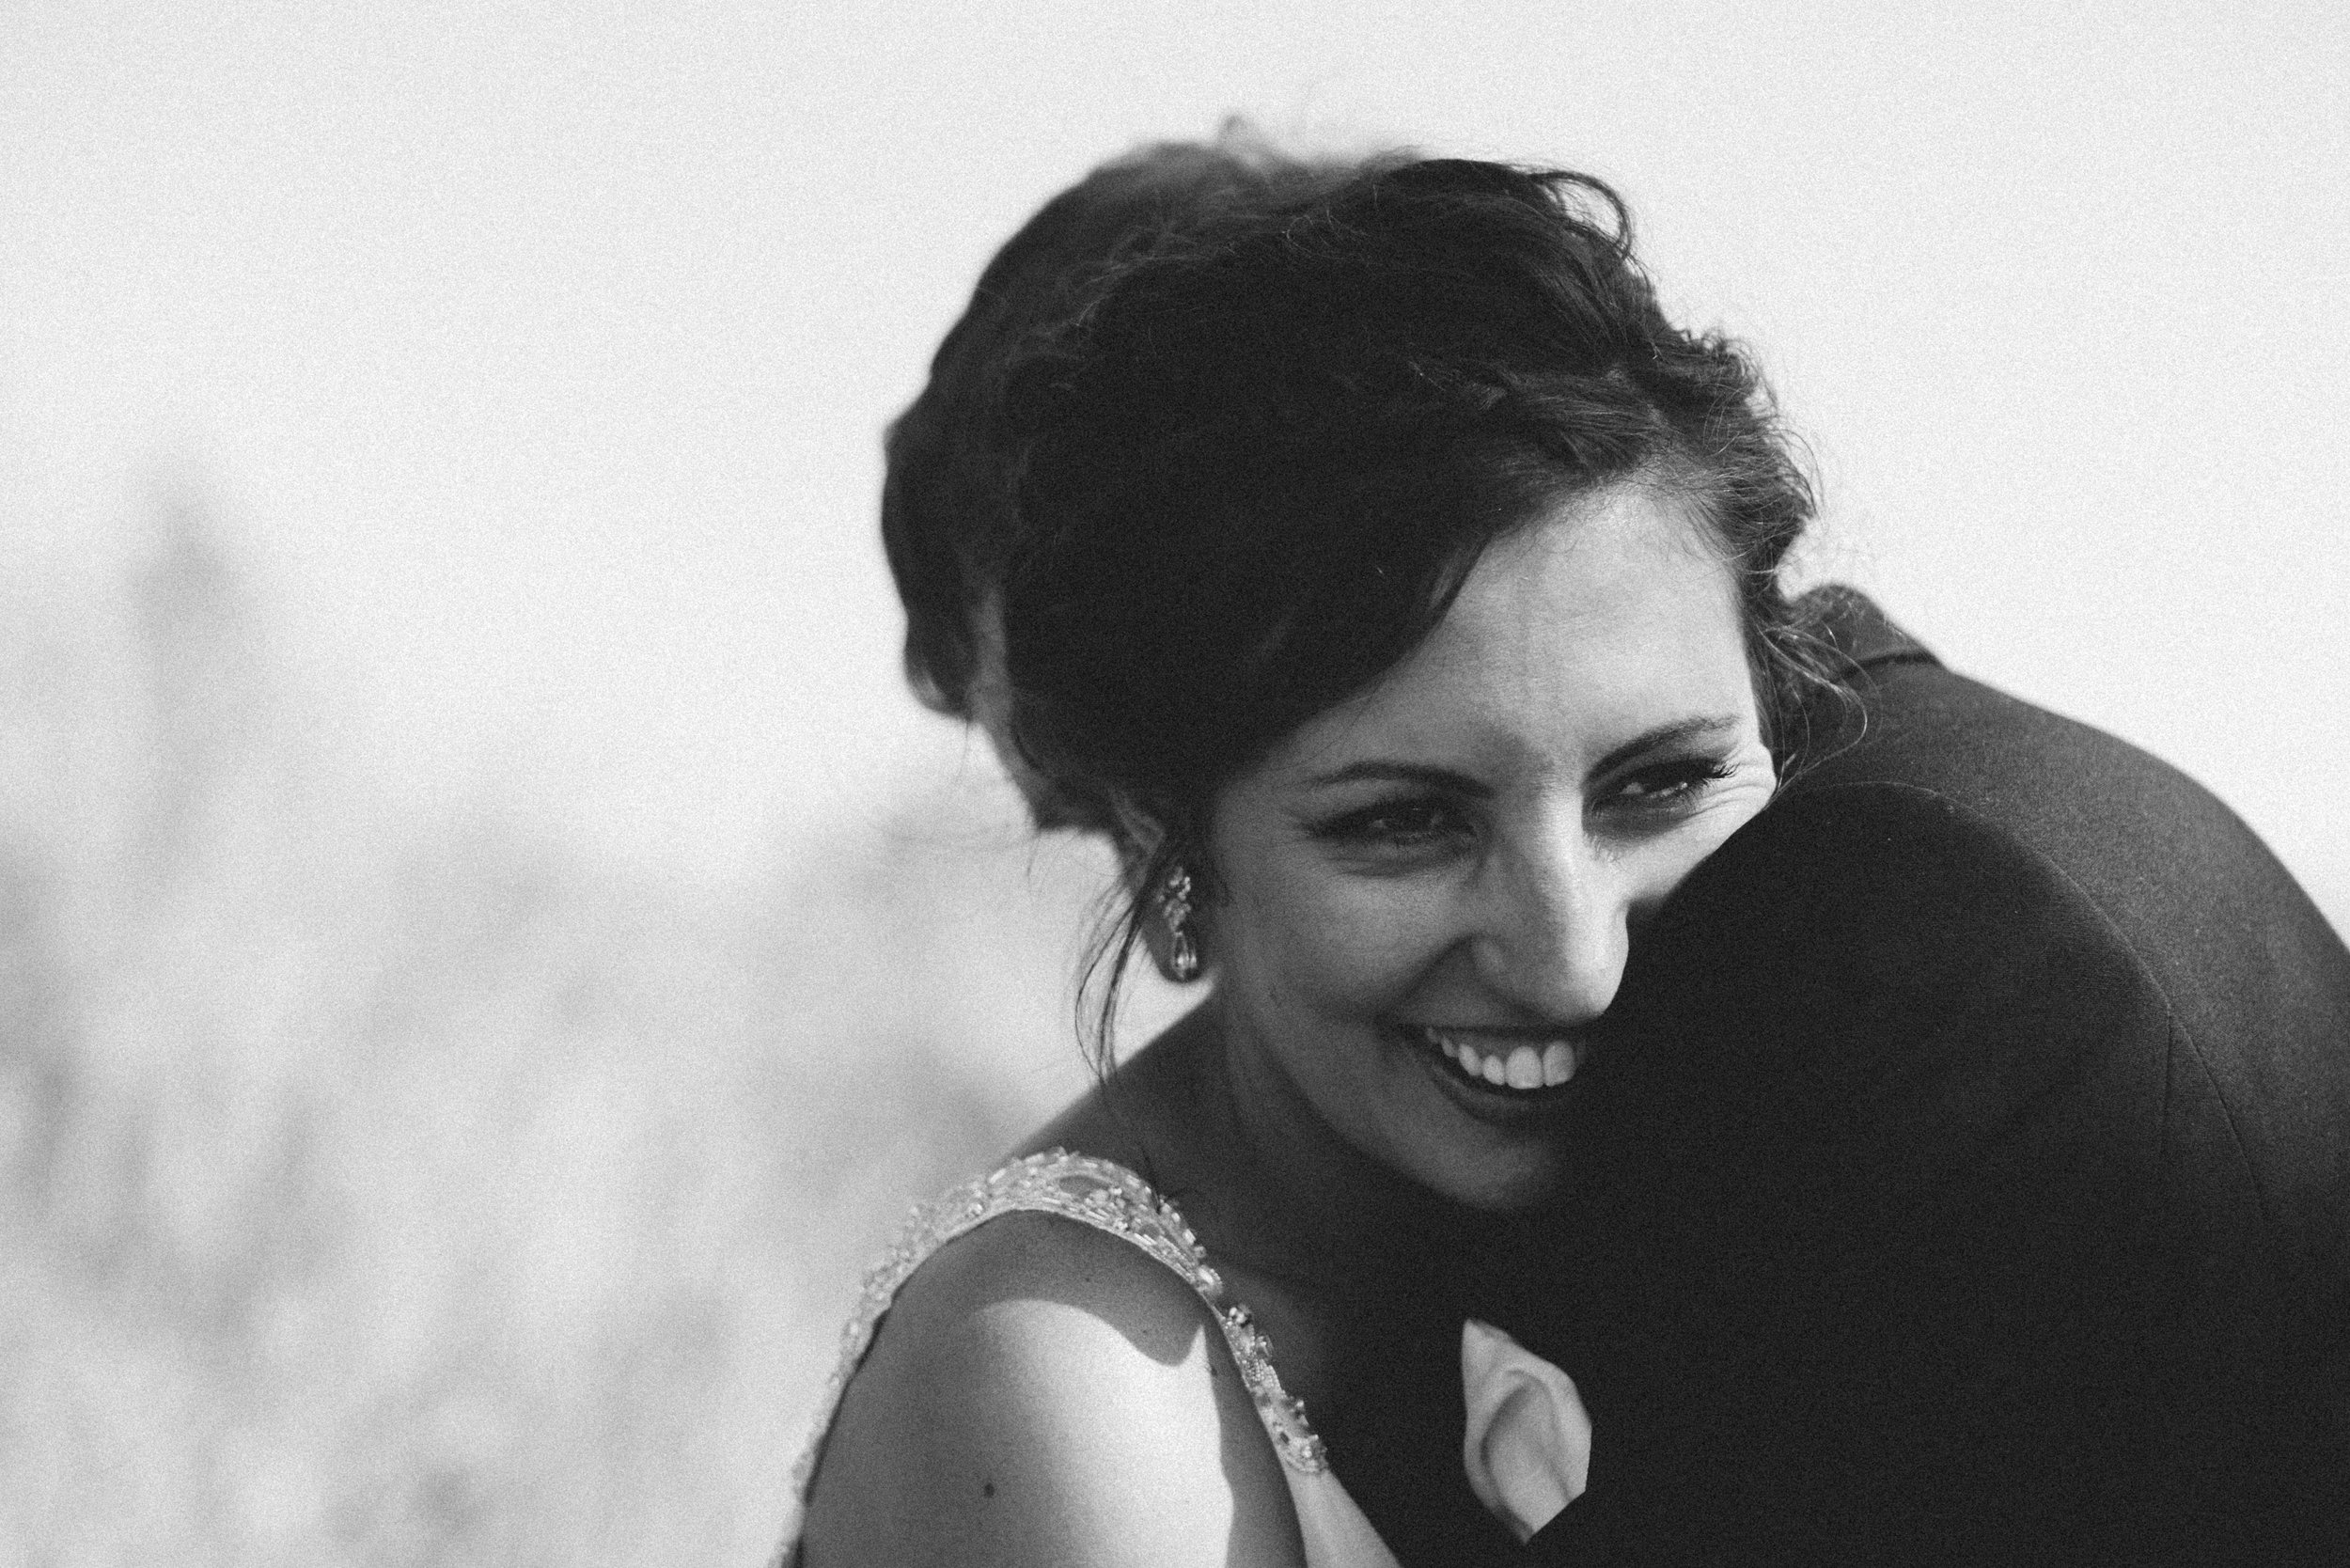 Mid-West-Grand-Rapids-Saint-Joseph-Michigan-Videography-Wedding-Trailer-Kayla-Paul-Andres